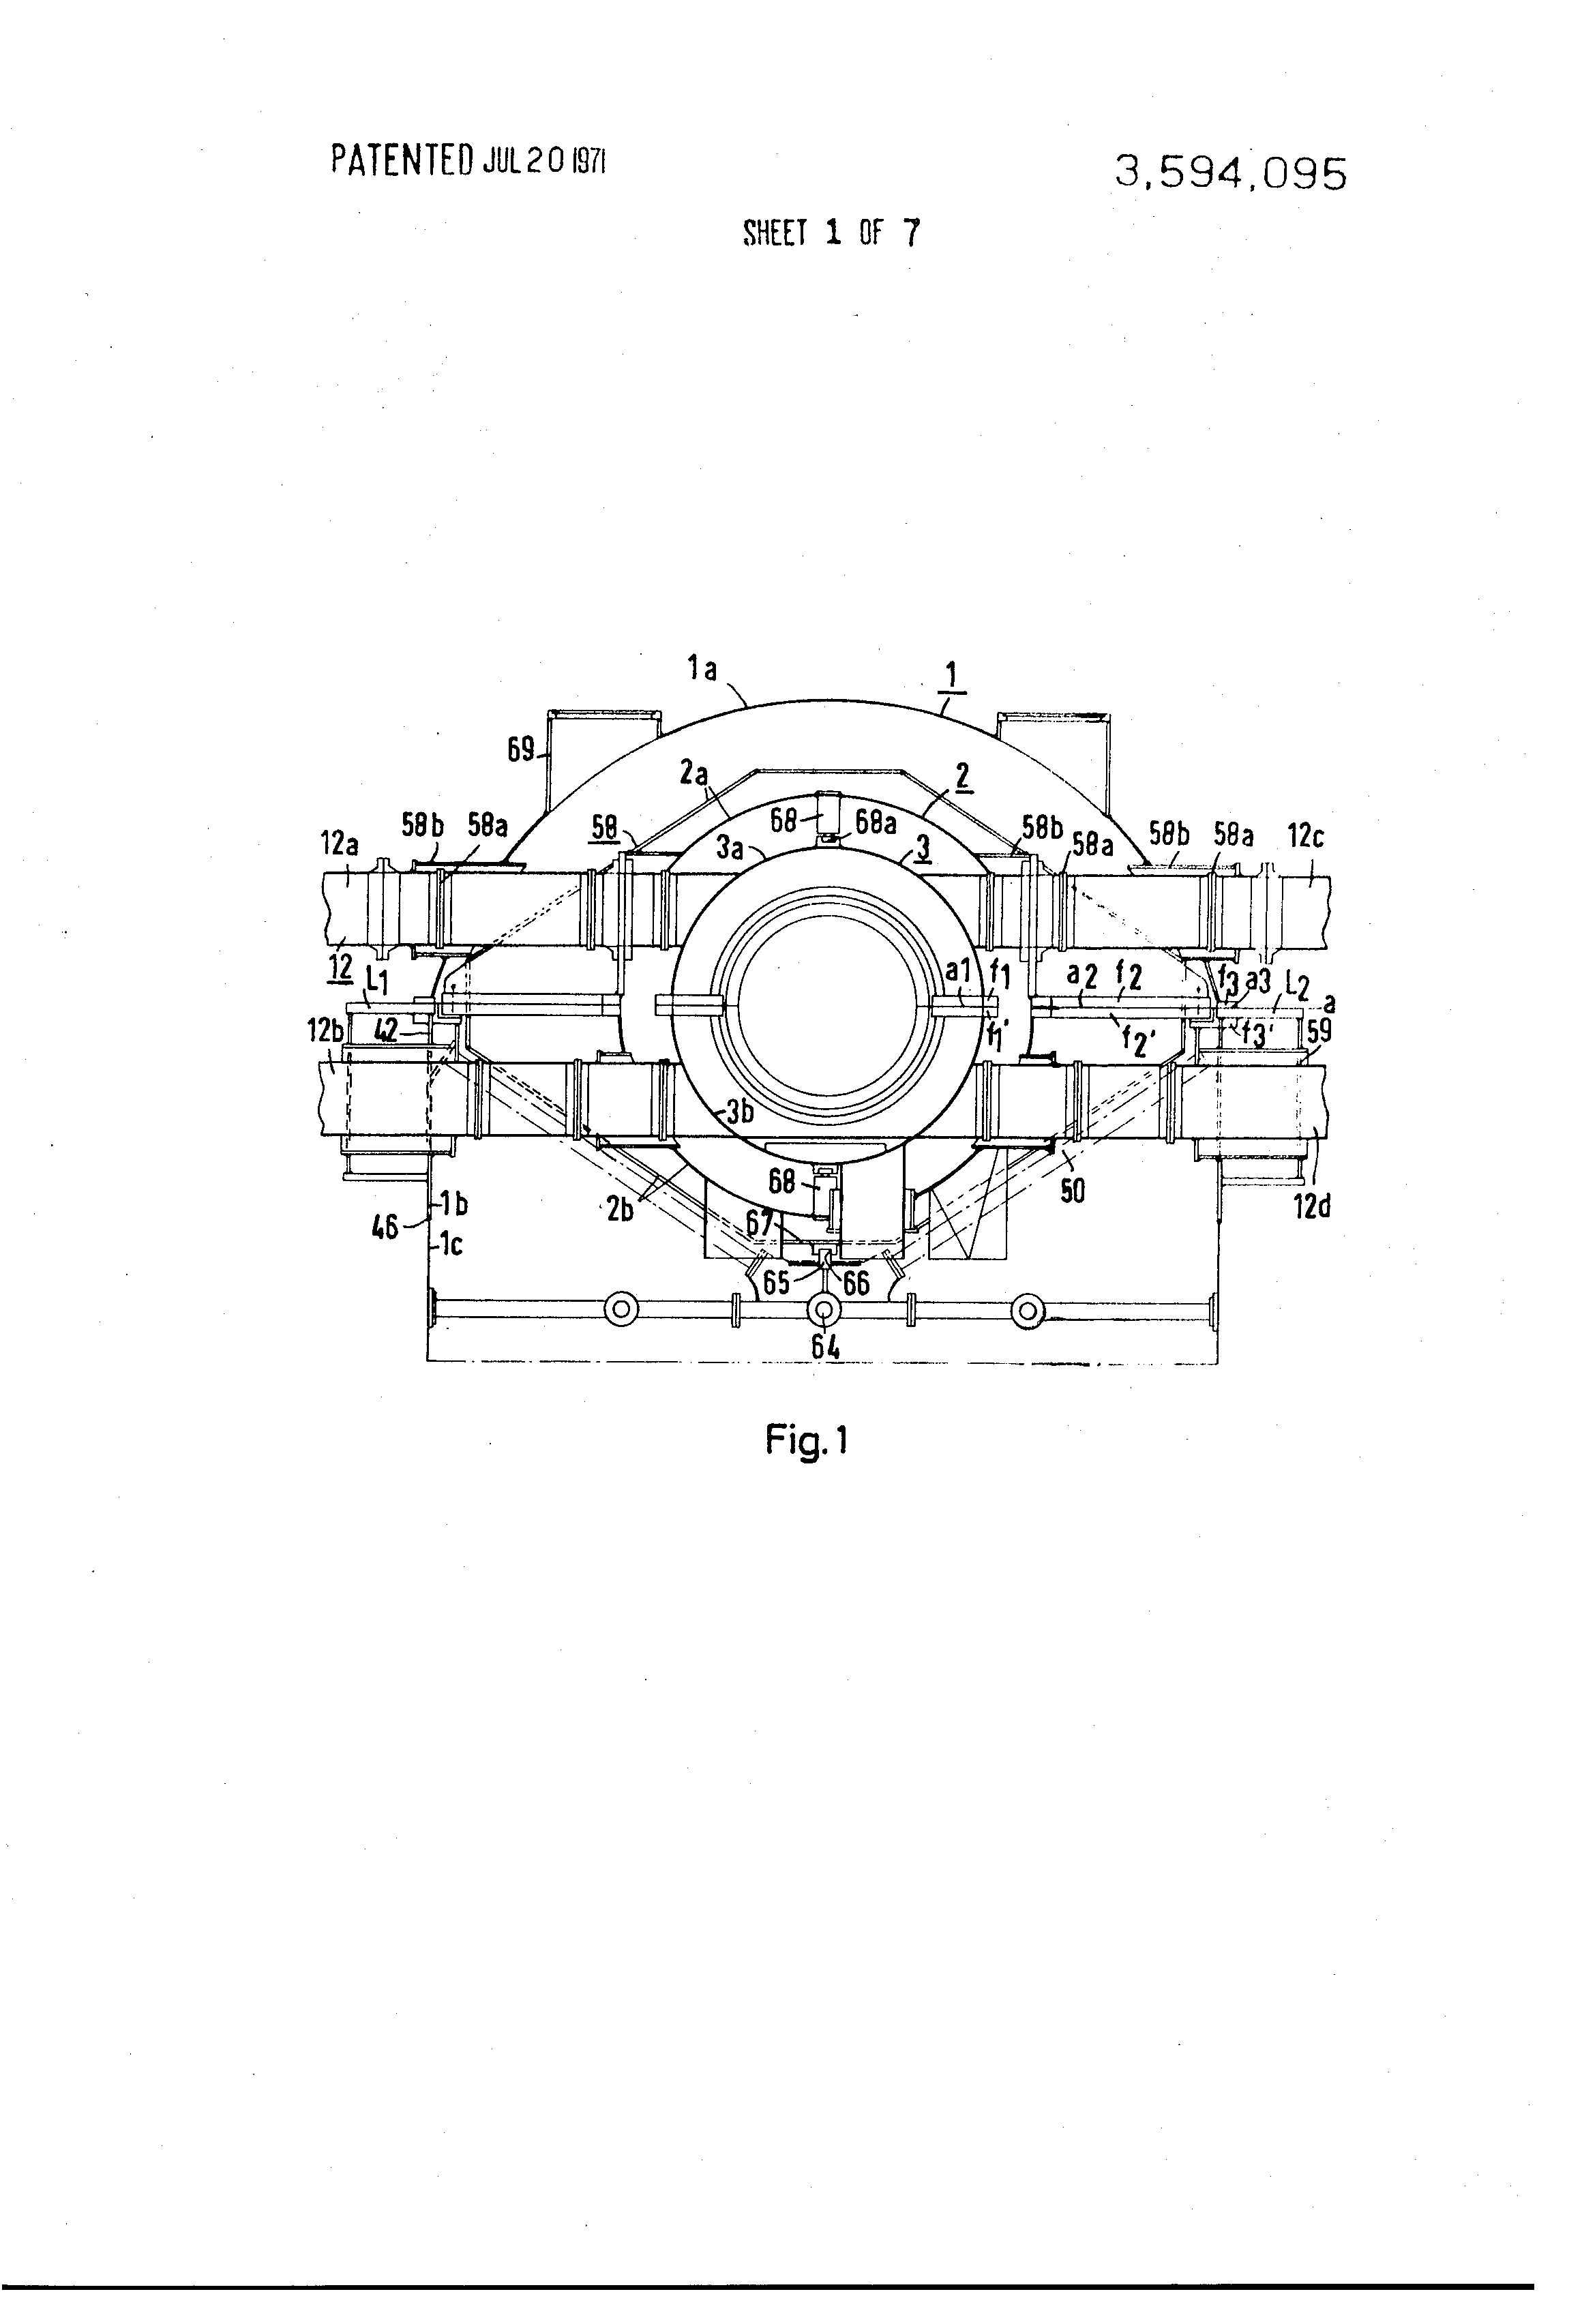 Patent US Casing for low pressure stages of steam